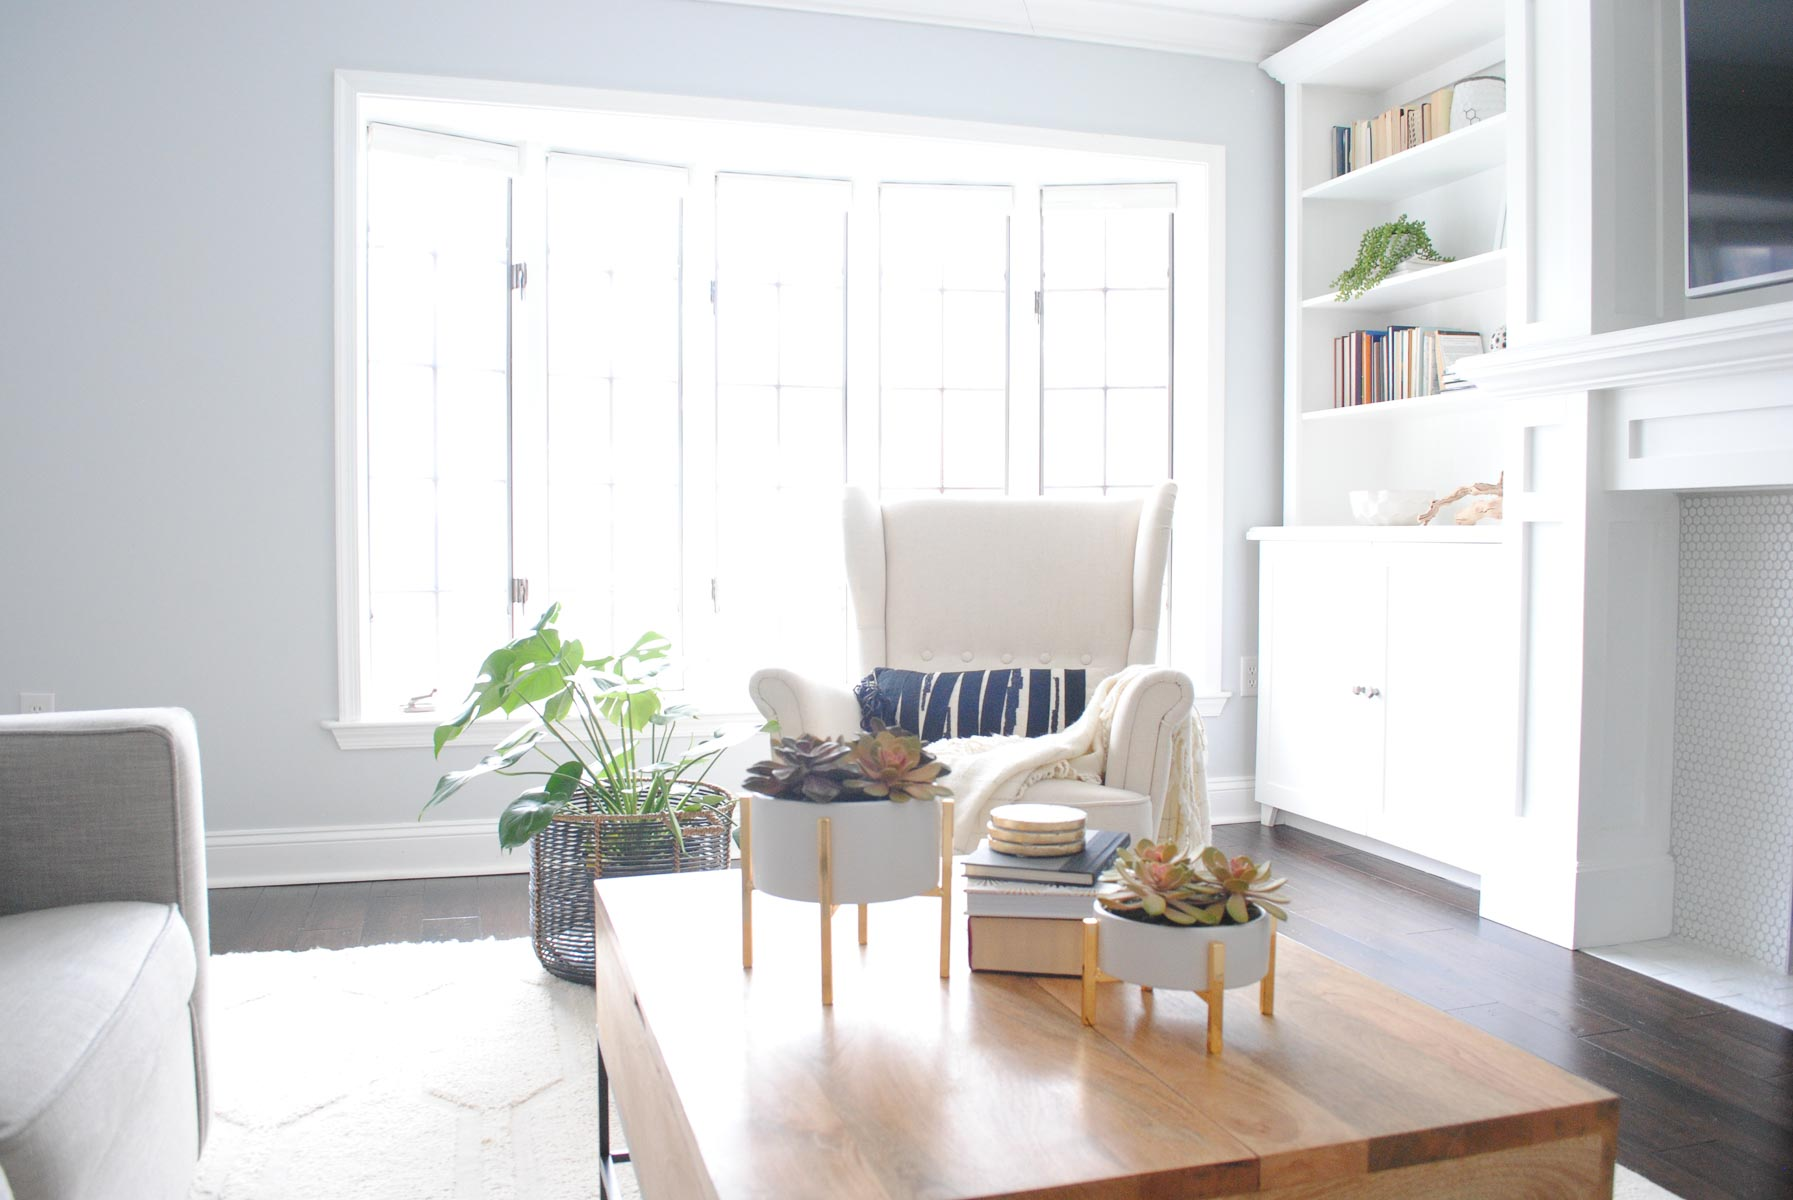 bright-abode-virginia-photo-studio-photography-natural-light-lifestyle-photo-7.jpg